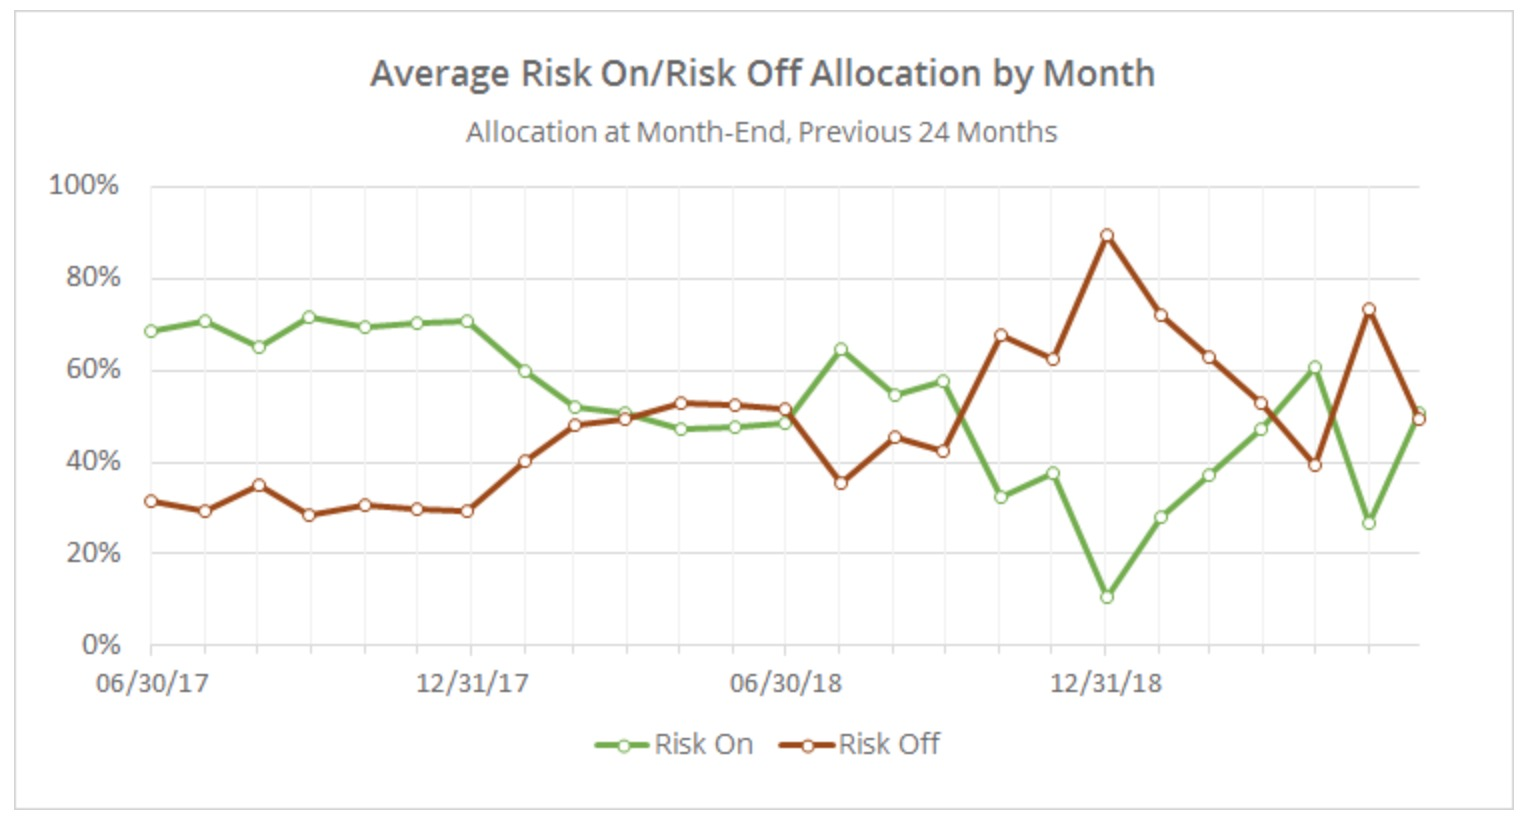 Tactical Asset Allocation 1H 2019 Overview – Investing For A